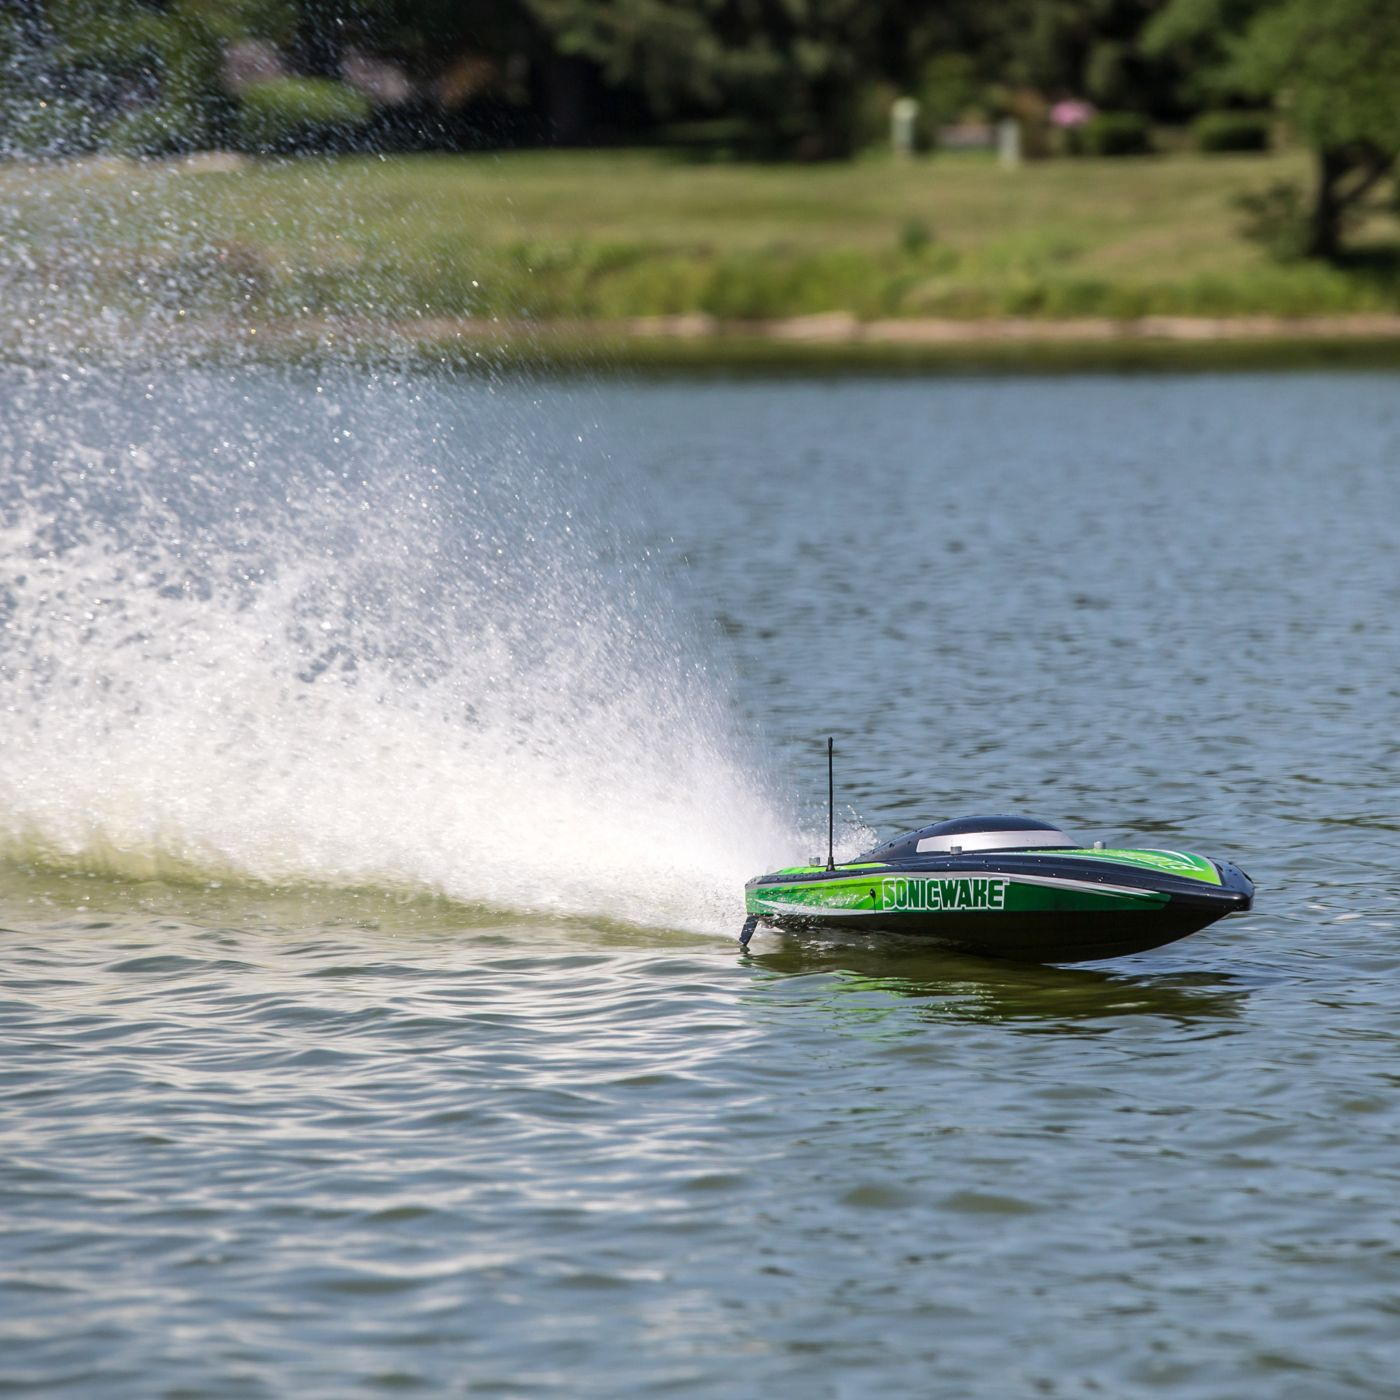 Proboat Sonicwake 36 Deep-V Self-Righting Brushless Boat RTR 6